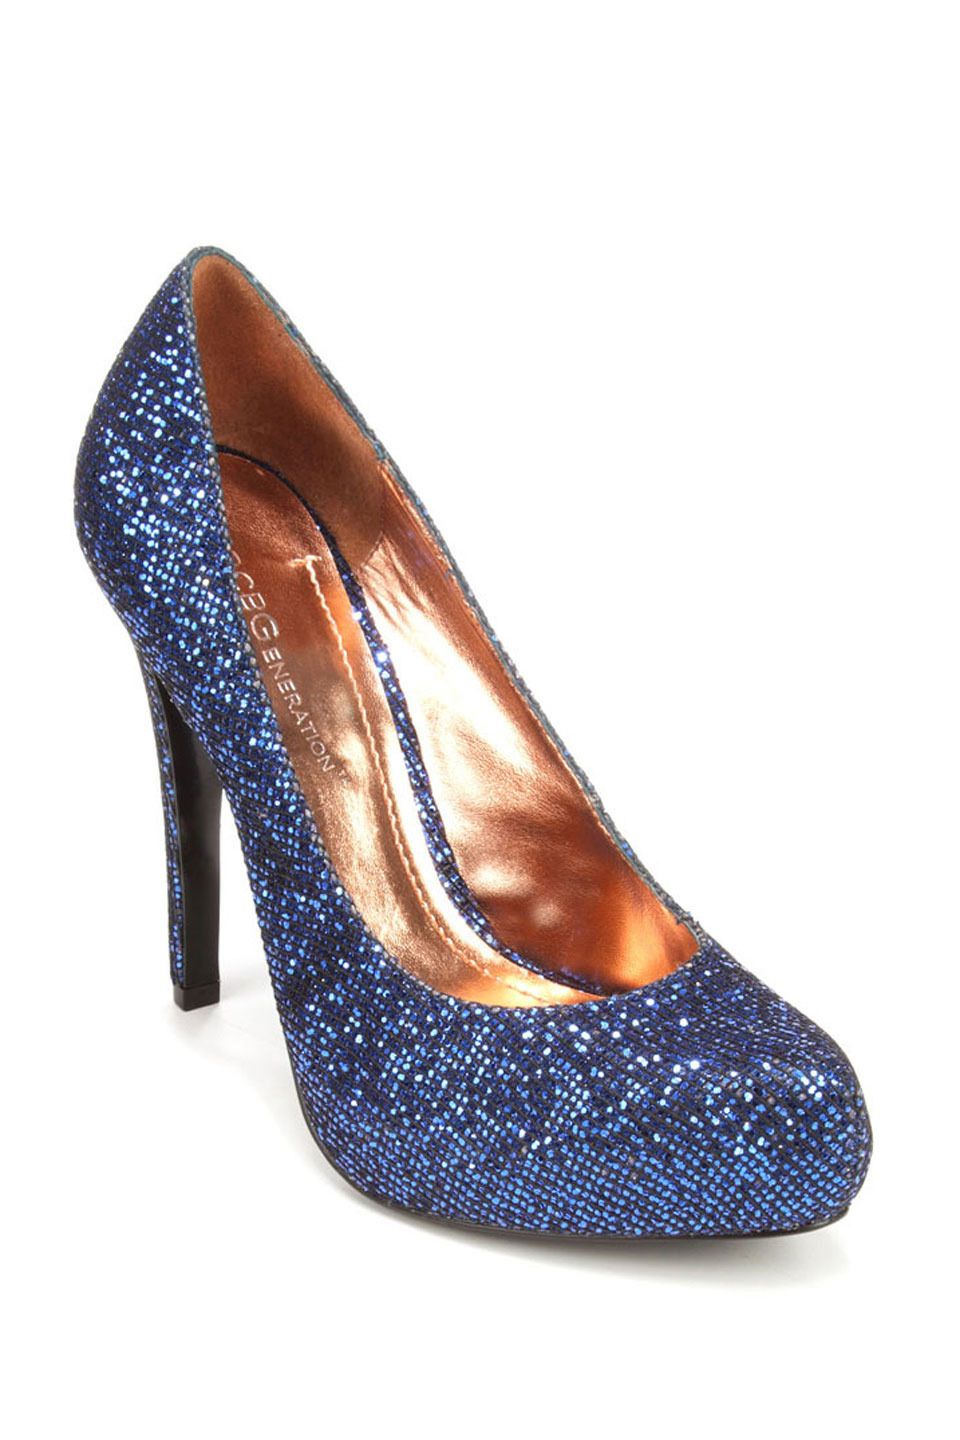 Bcbgeneration parade pumps in dark navy beyond the rack shoes